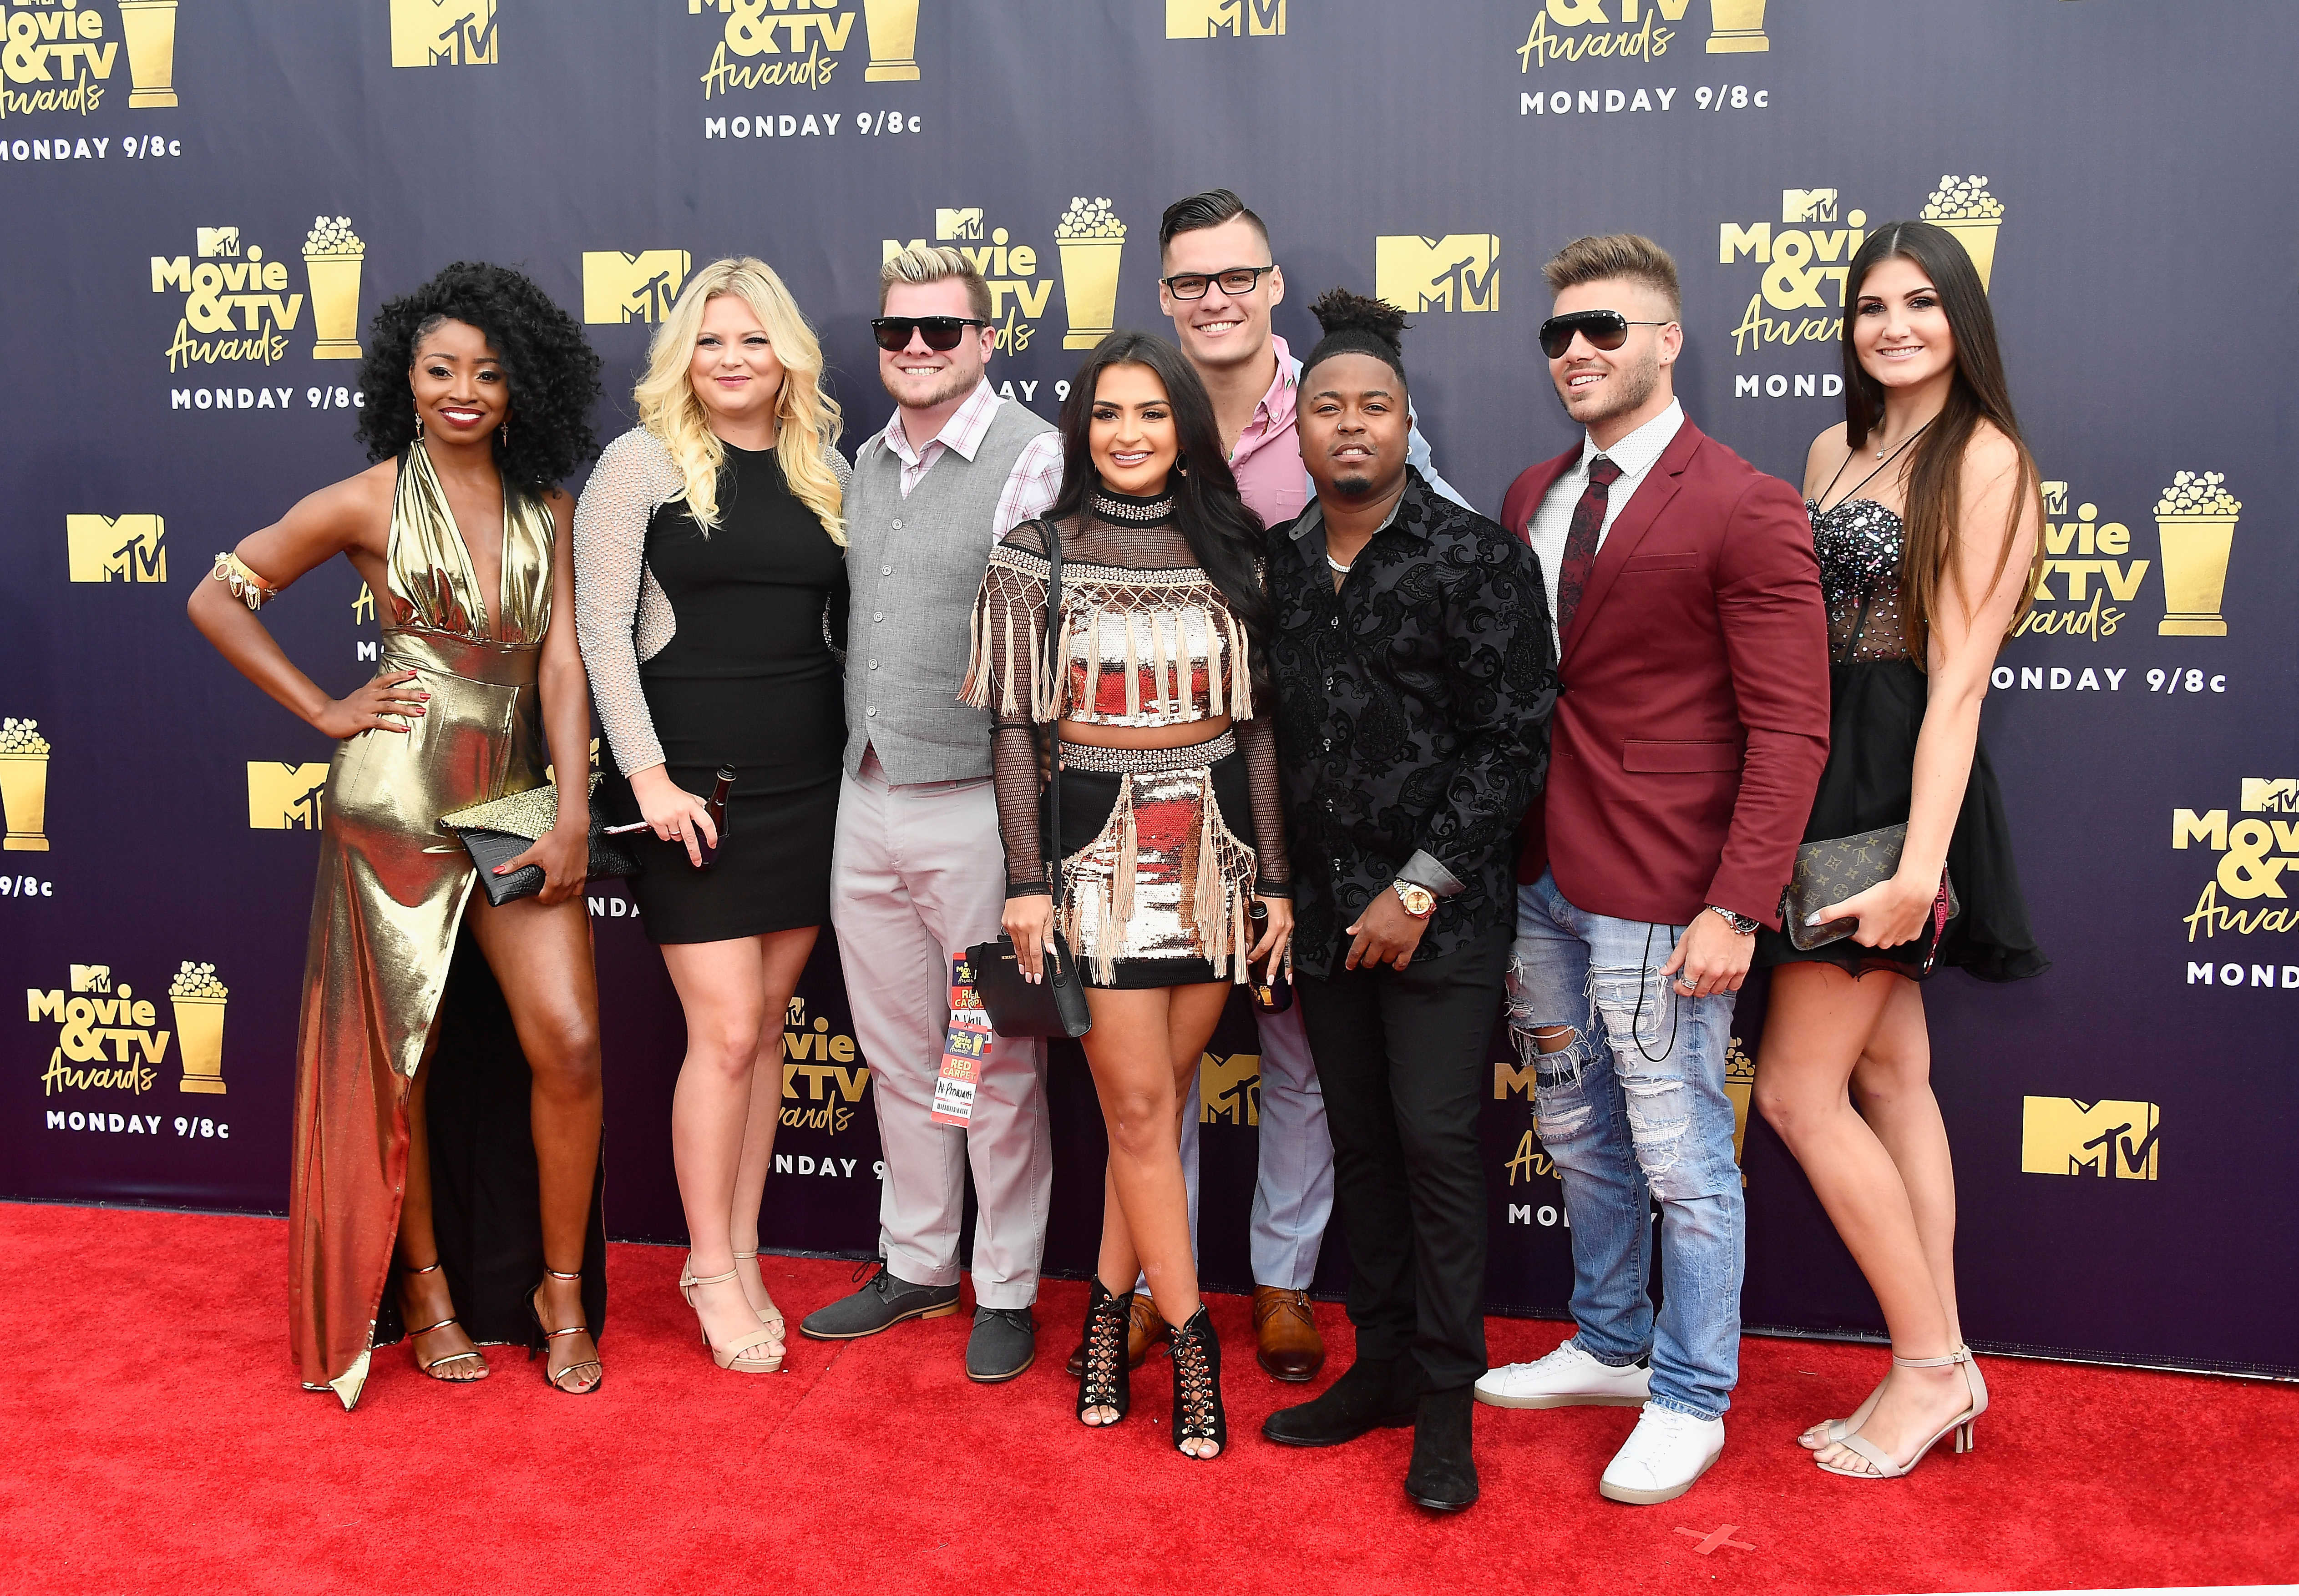 The Cast of 'Floribama Shore' (Source: Getty Images)